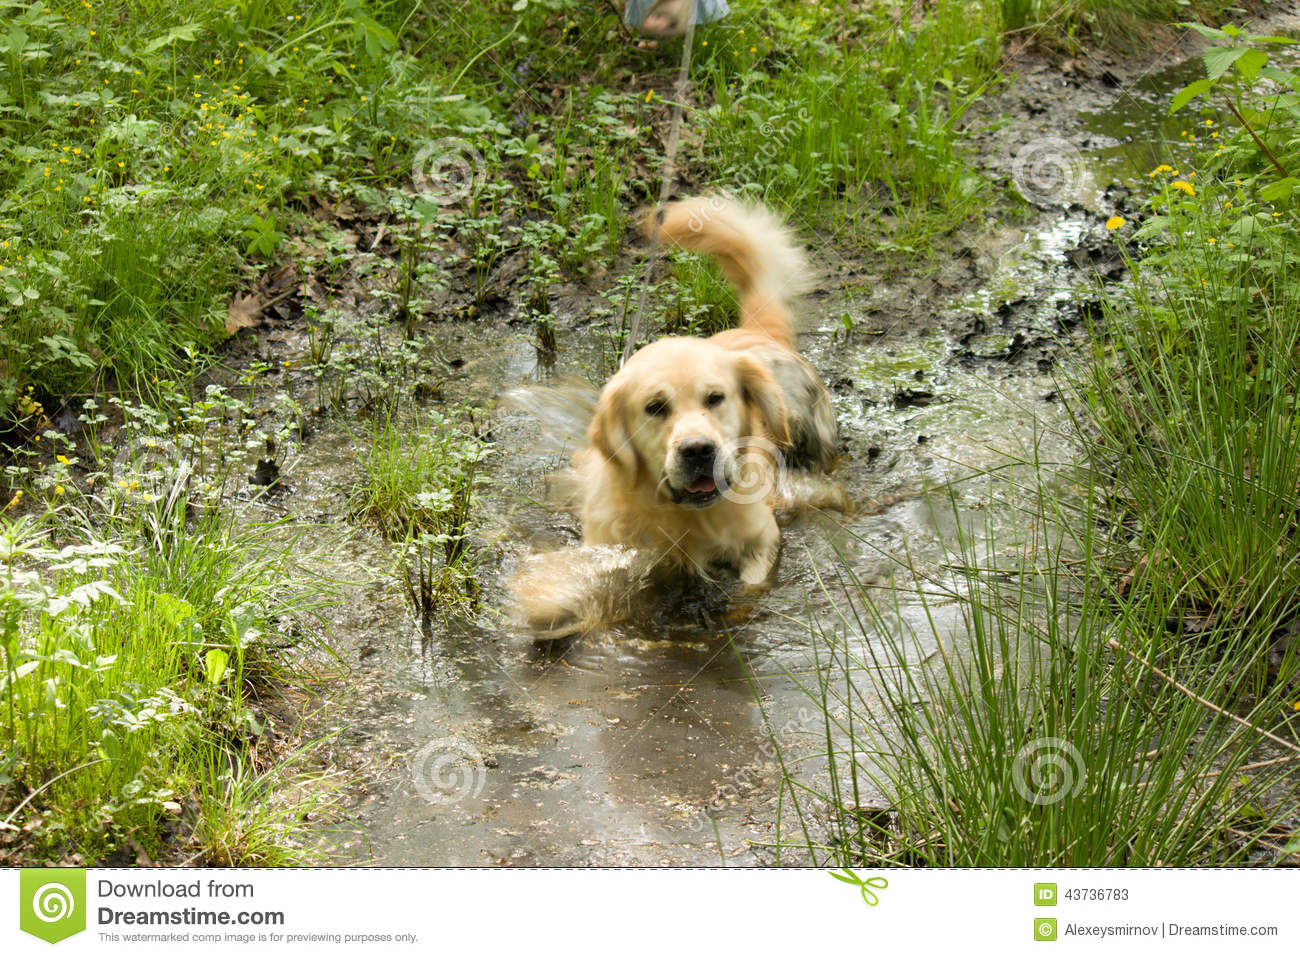 Golden retriever dog in muddy puddle